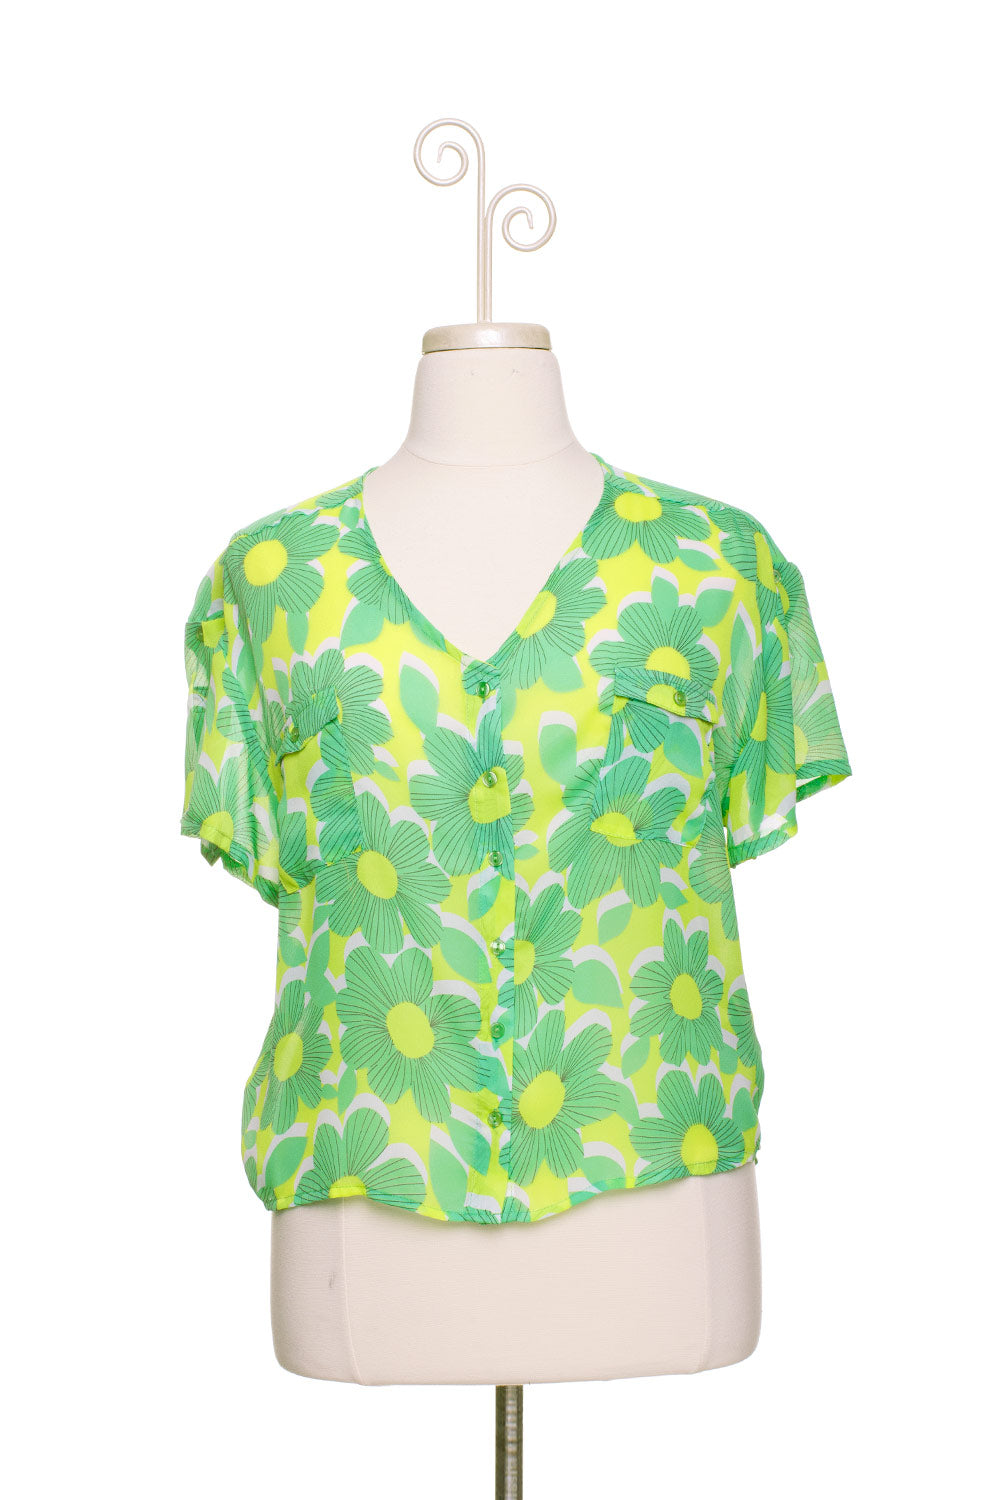 Type 1 Bright Bloom Top